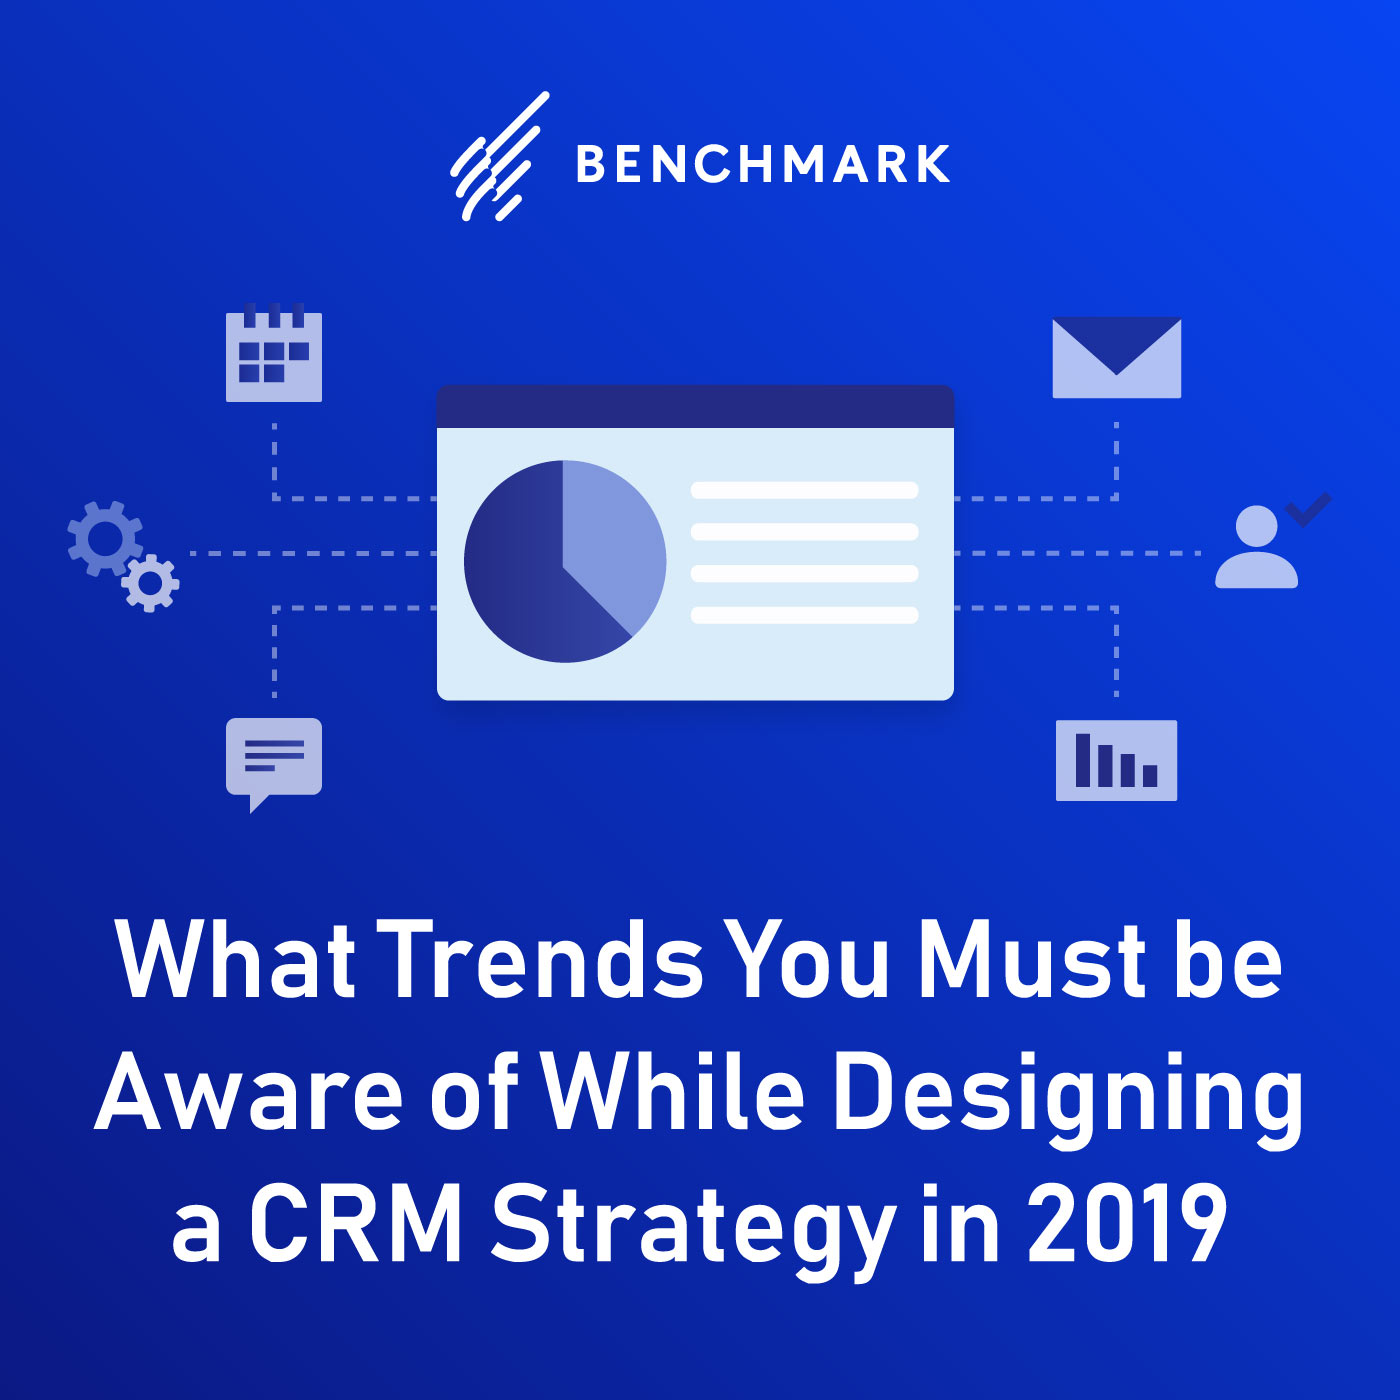 What Trends You Must be Aware of While Designing a CRM Strategy in 2019